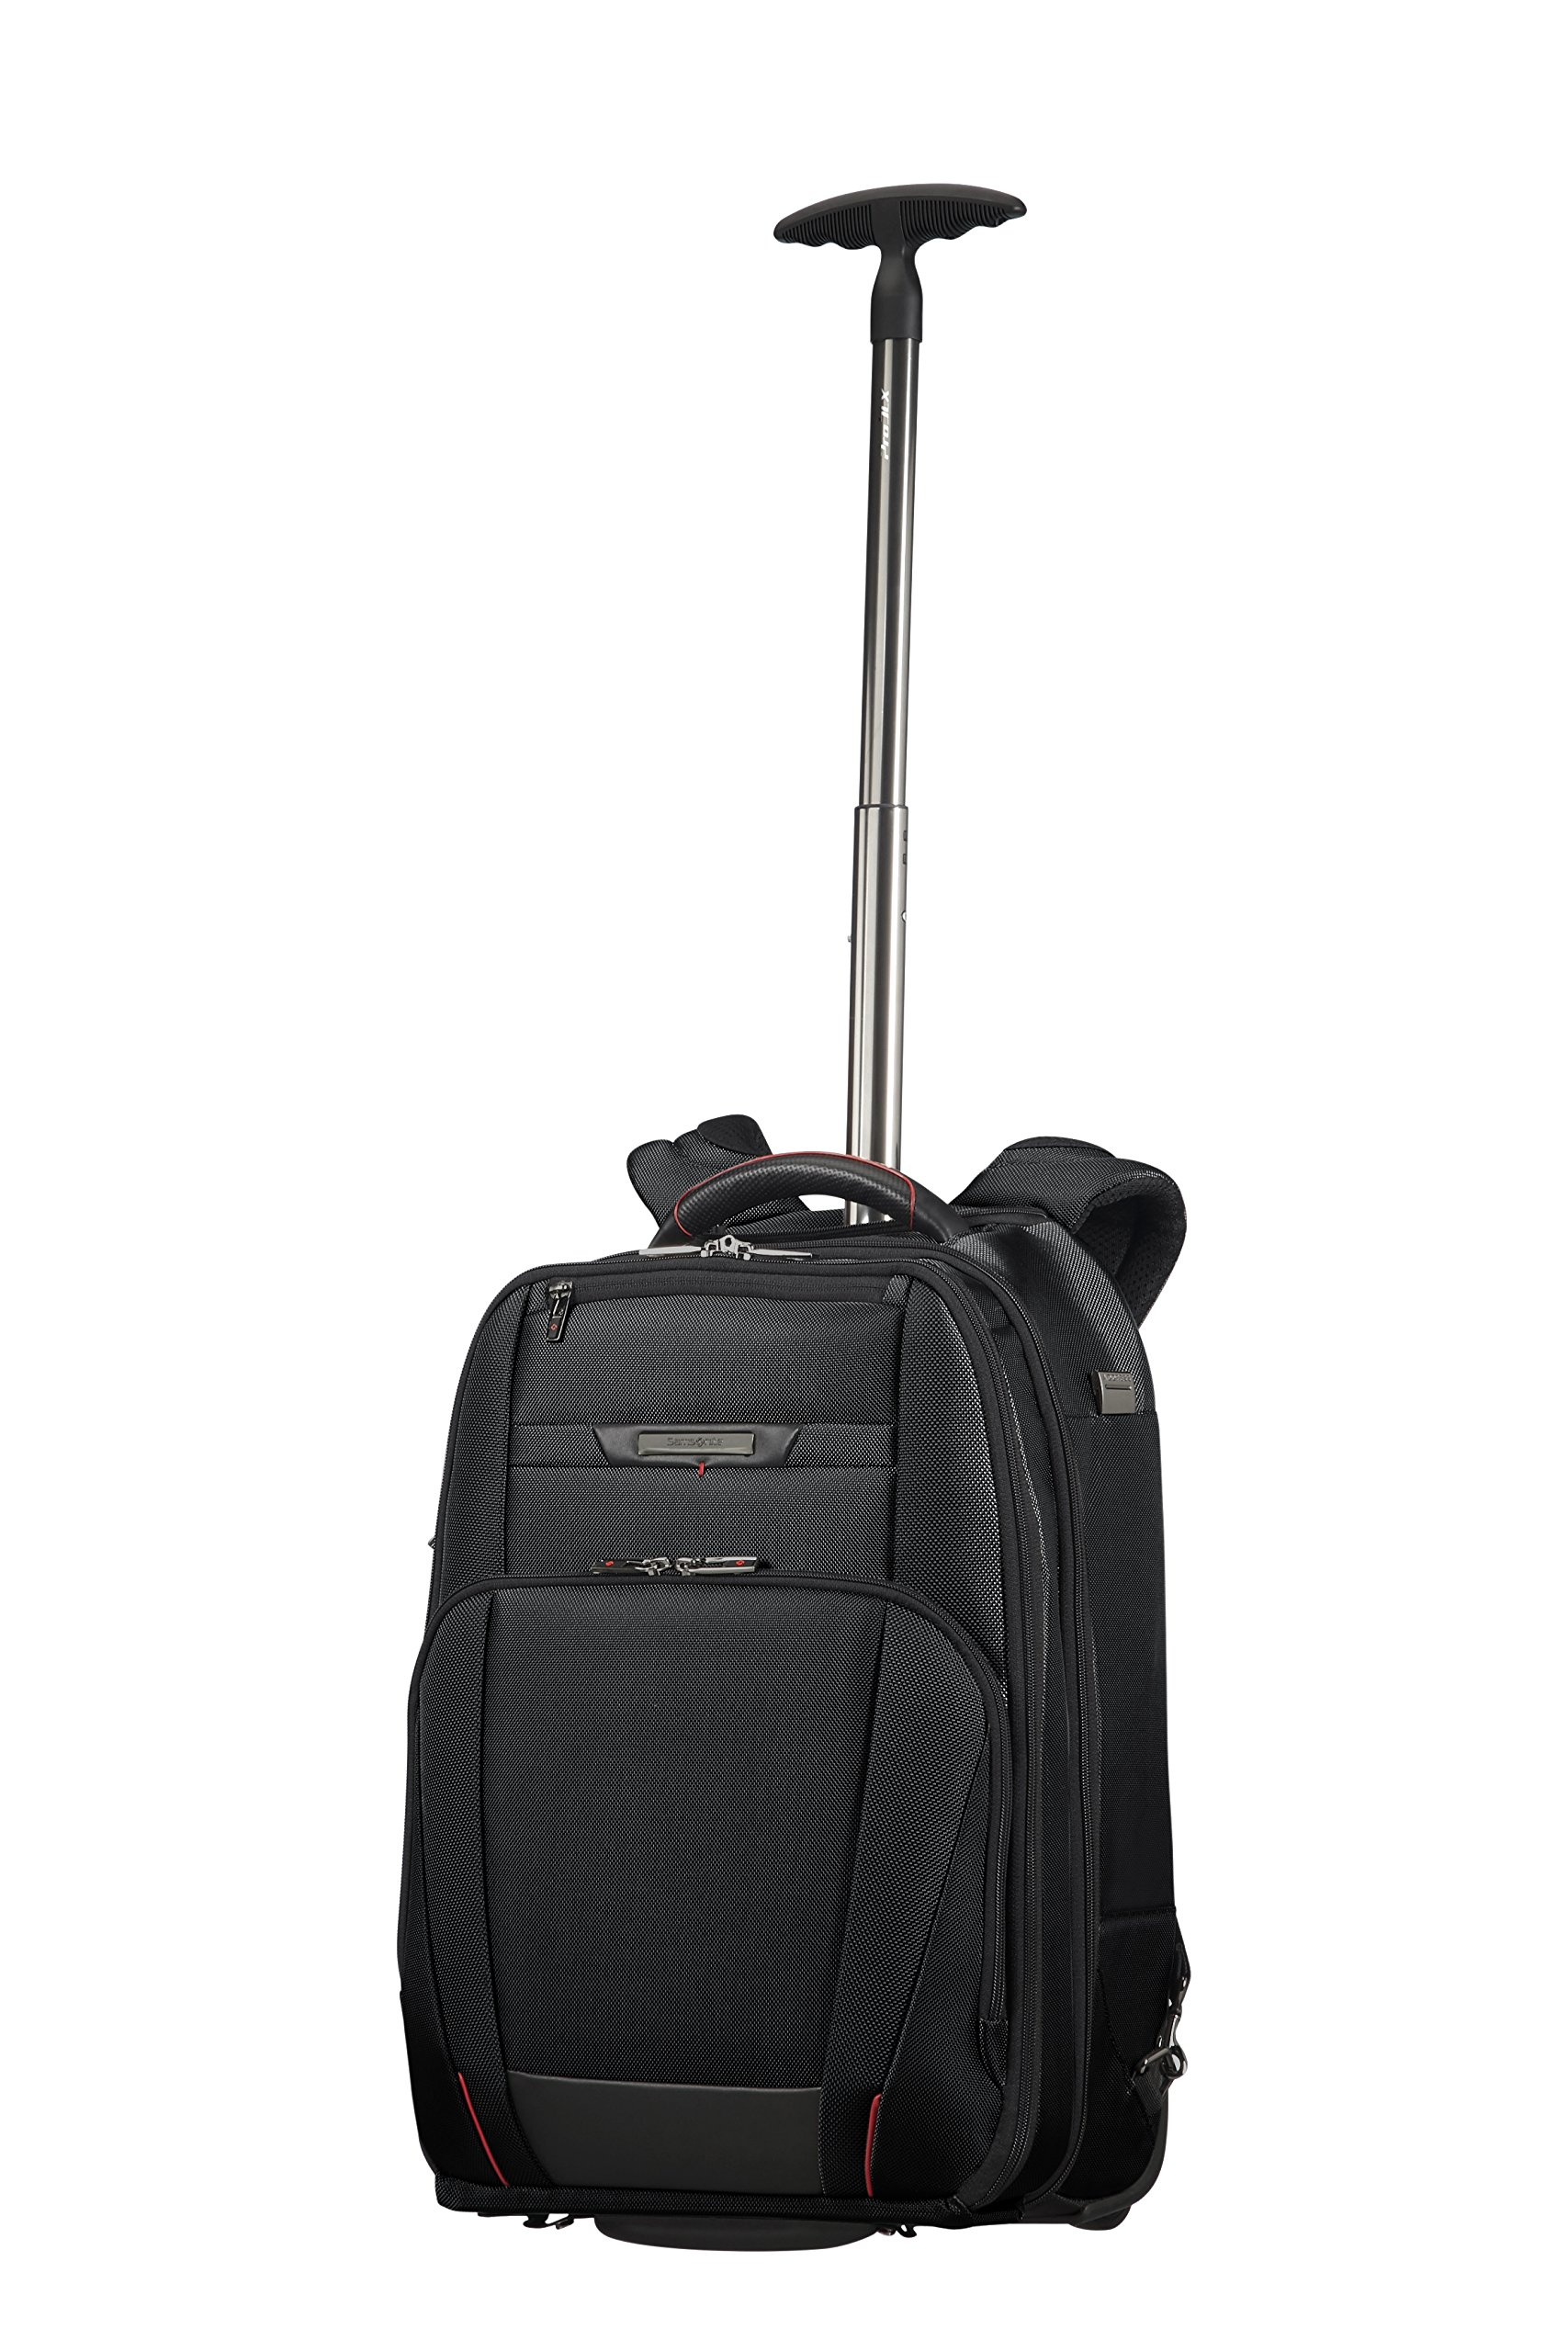 SAMSONITE Pro-DLX 5 – Wheeled Backpack for 17.3″ Laptop 2.6 KG Mochila Tipo Casual, 48 cm, 28 Liters, Negro (Black)